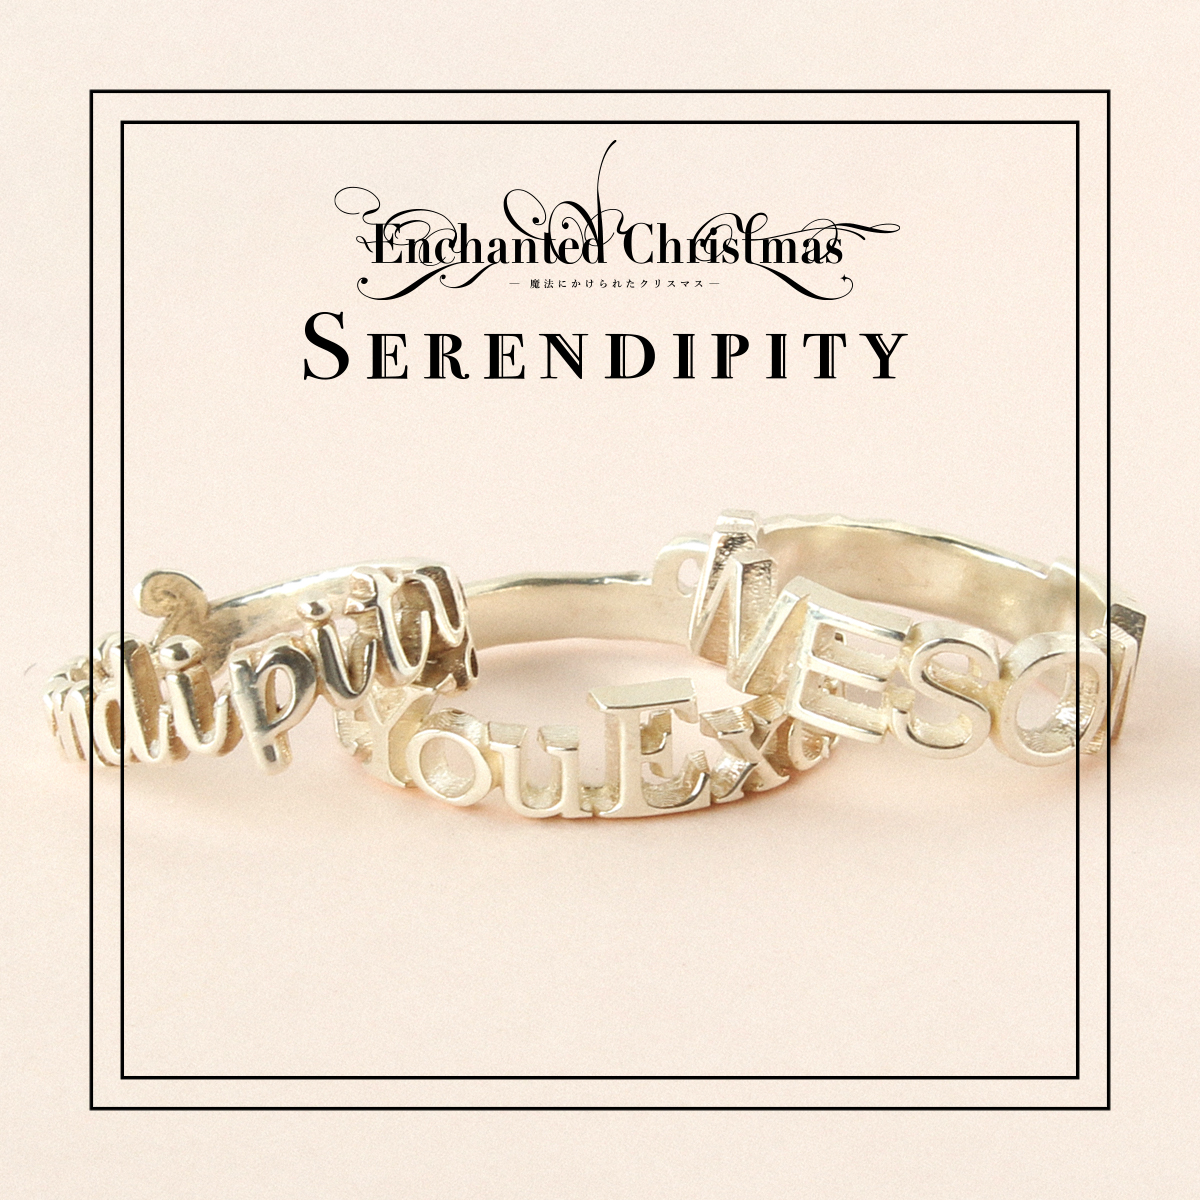 e.m._SERENDIPITY_LETTERing